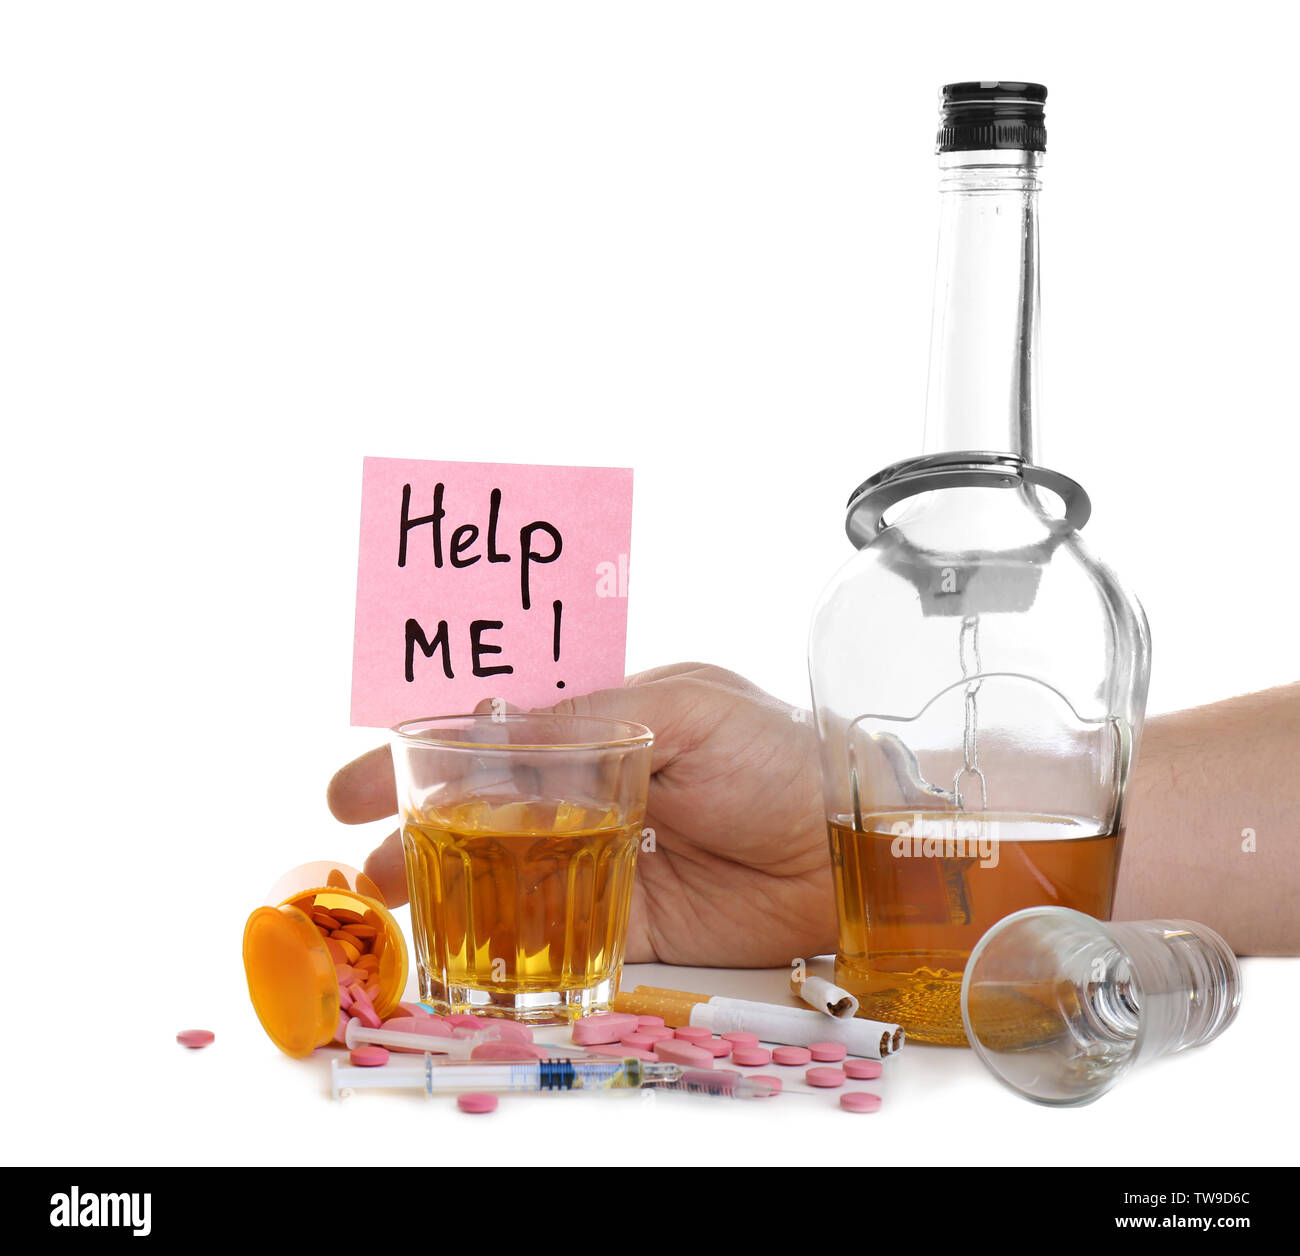 Man in handcuffs holding note with words 'Help me' near alcohol, cigarettes and drugs on white background - Stock Image